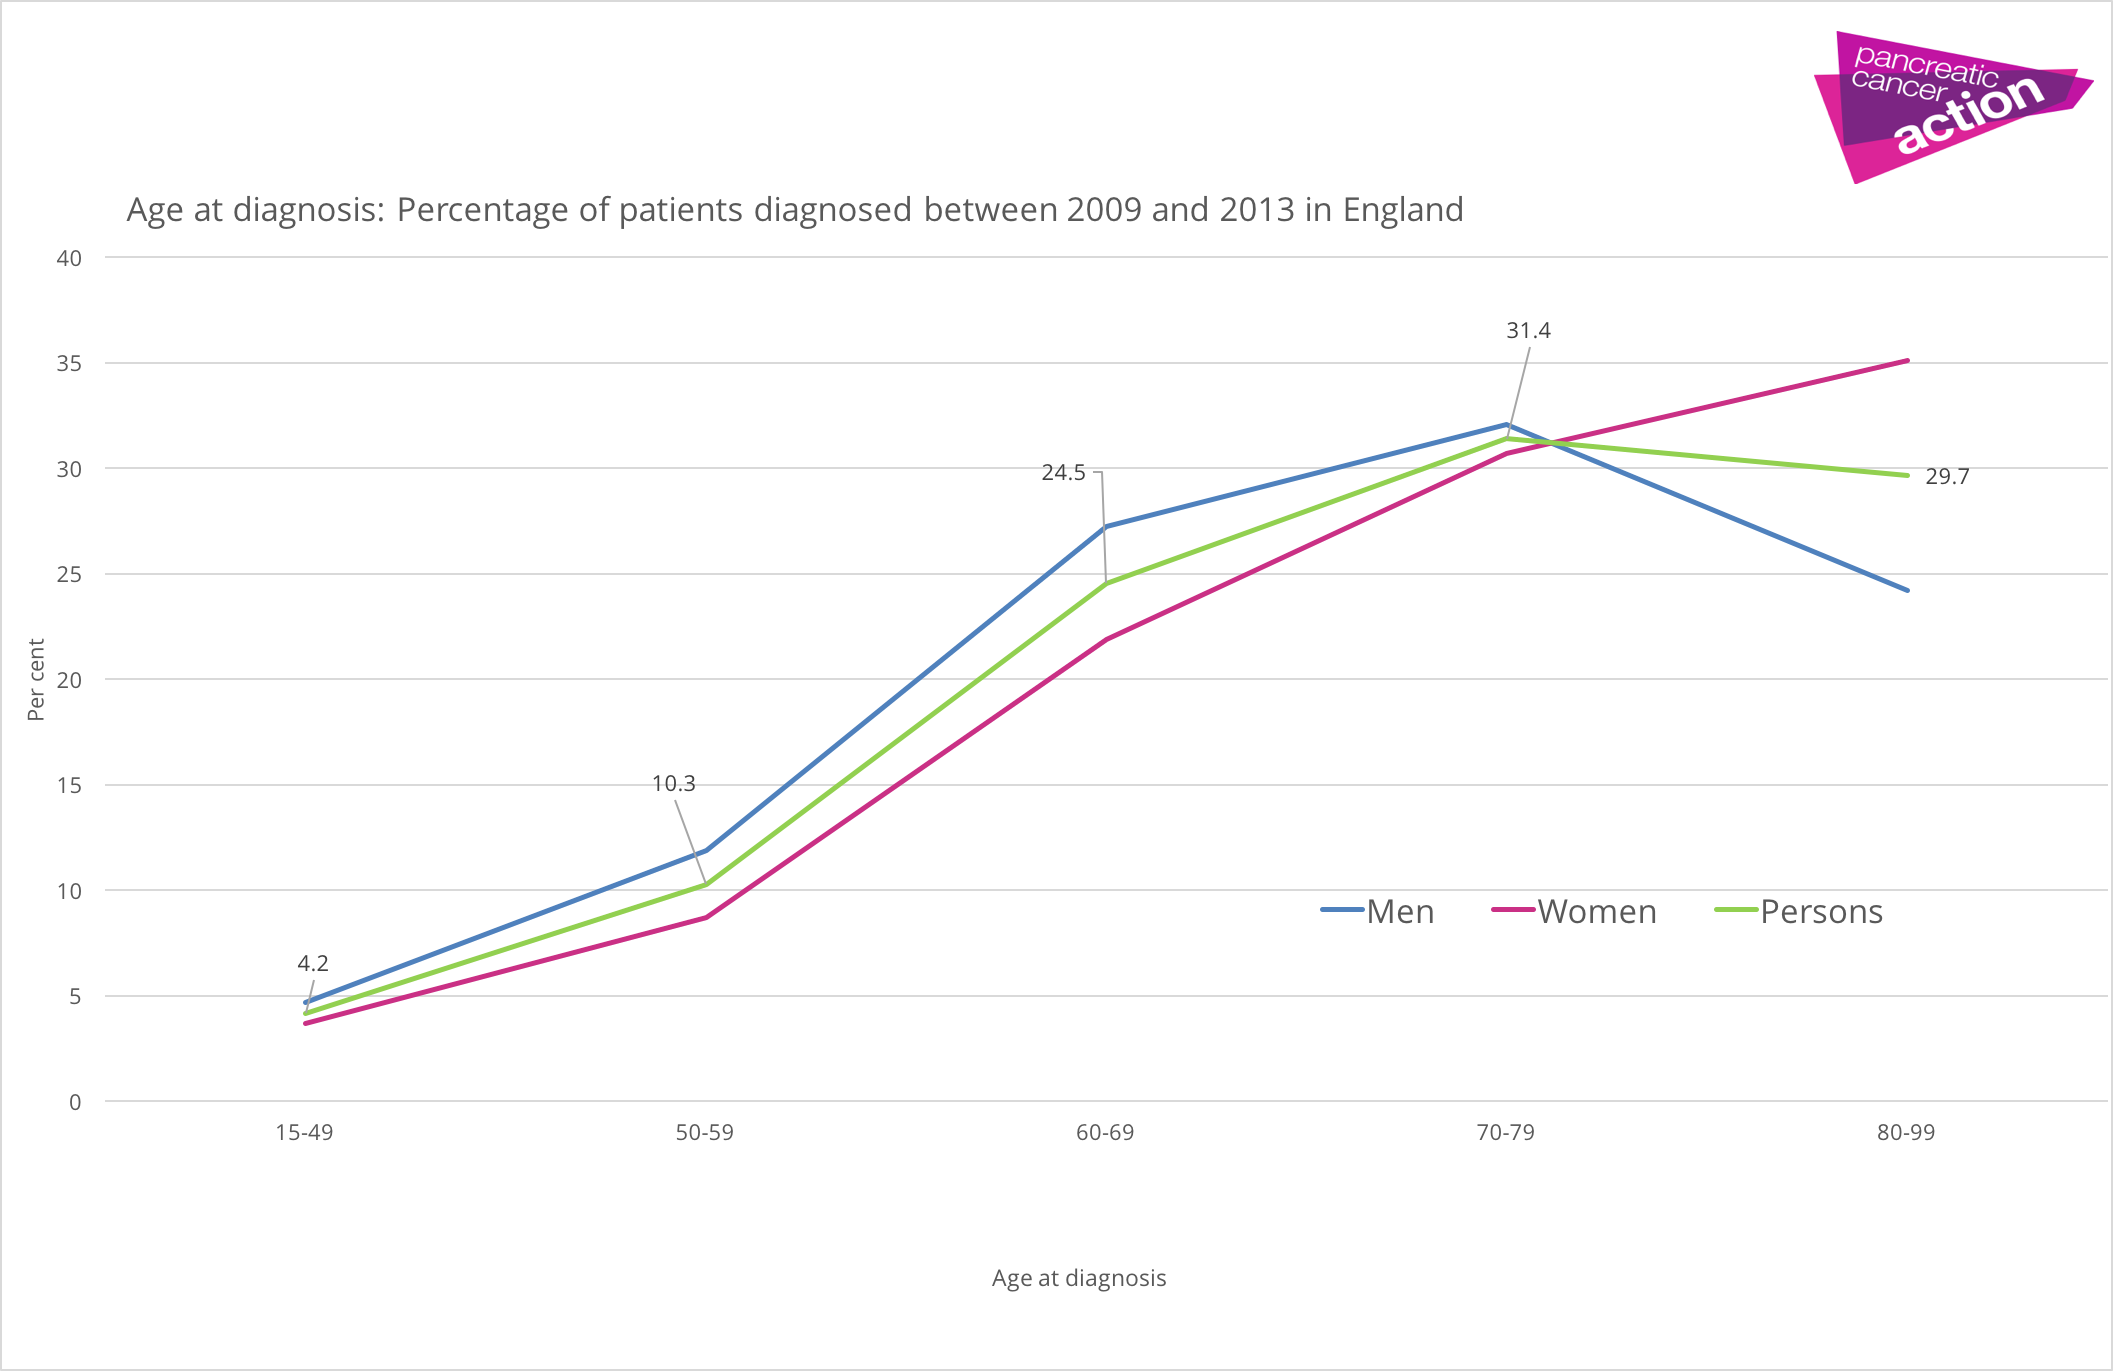 graph showing pancreatic cancer diagnosis by age group in England between 2009 and 2013